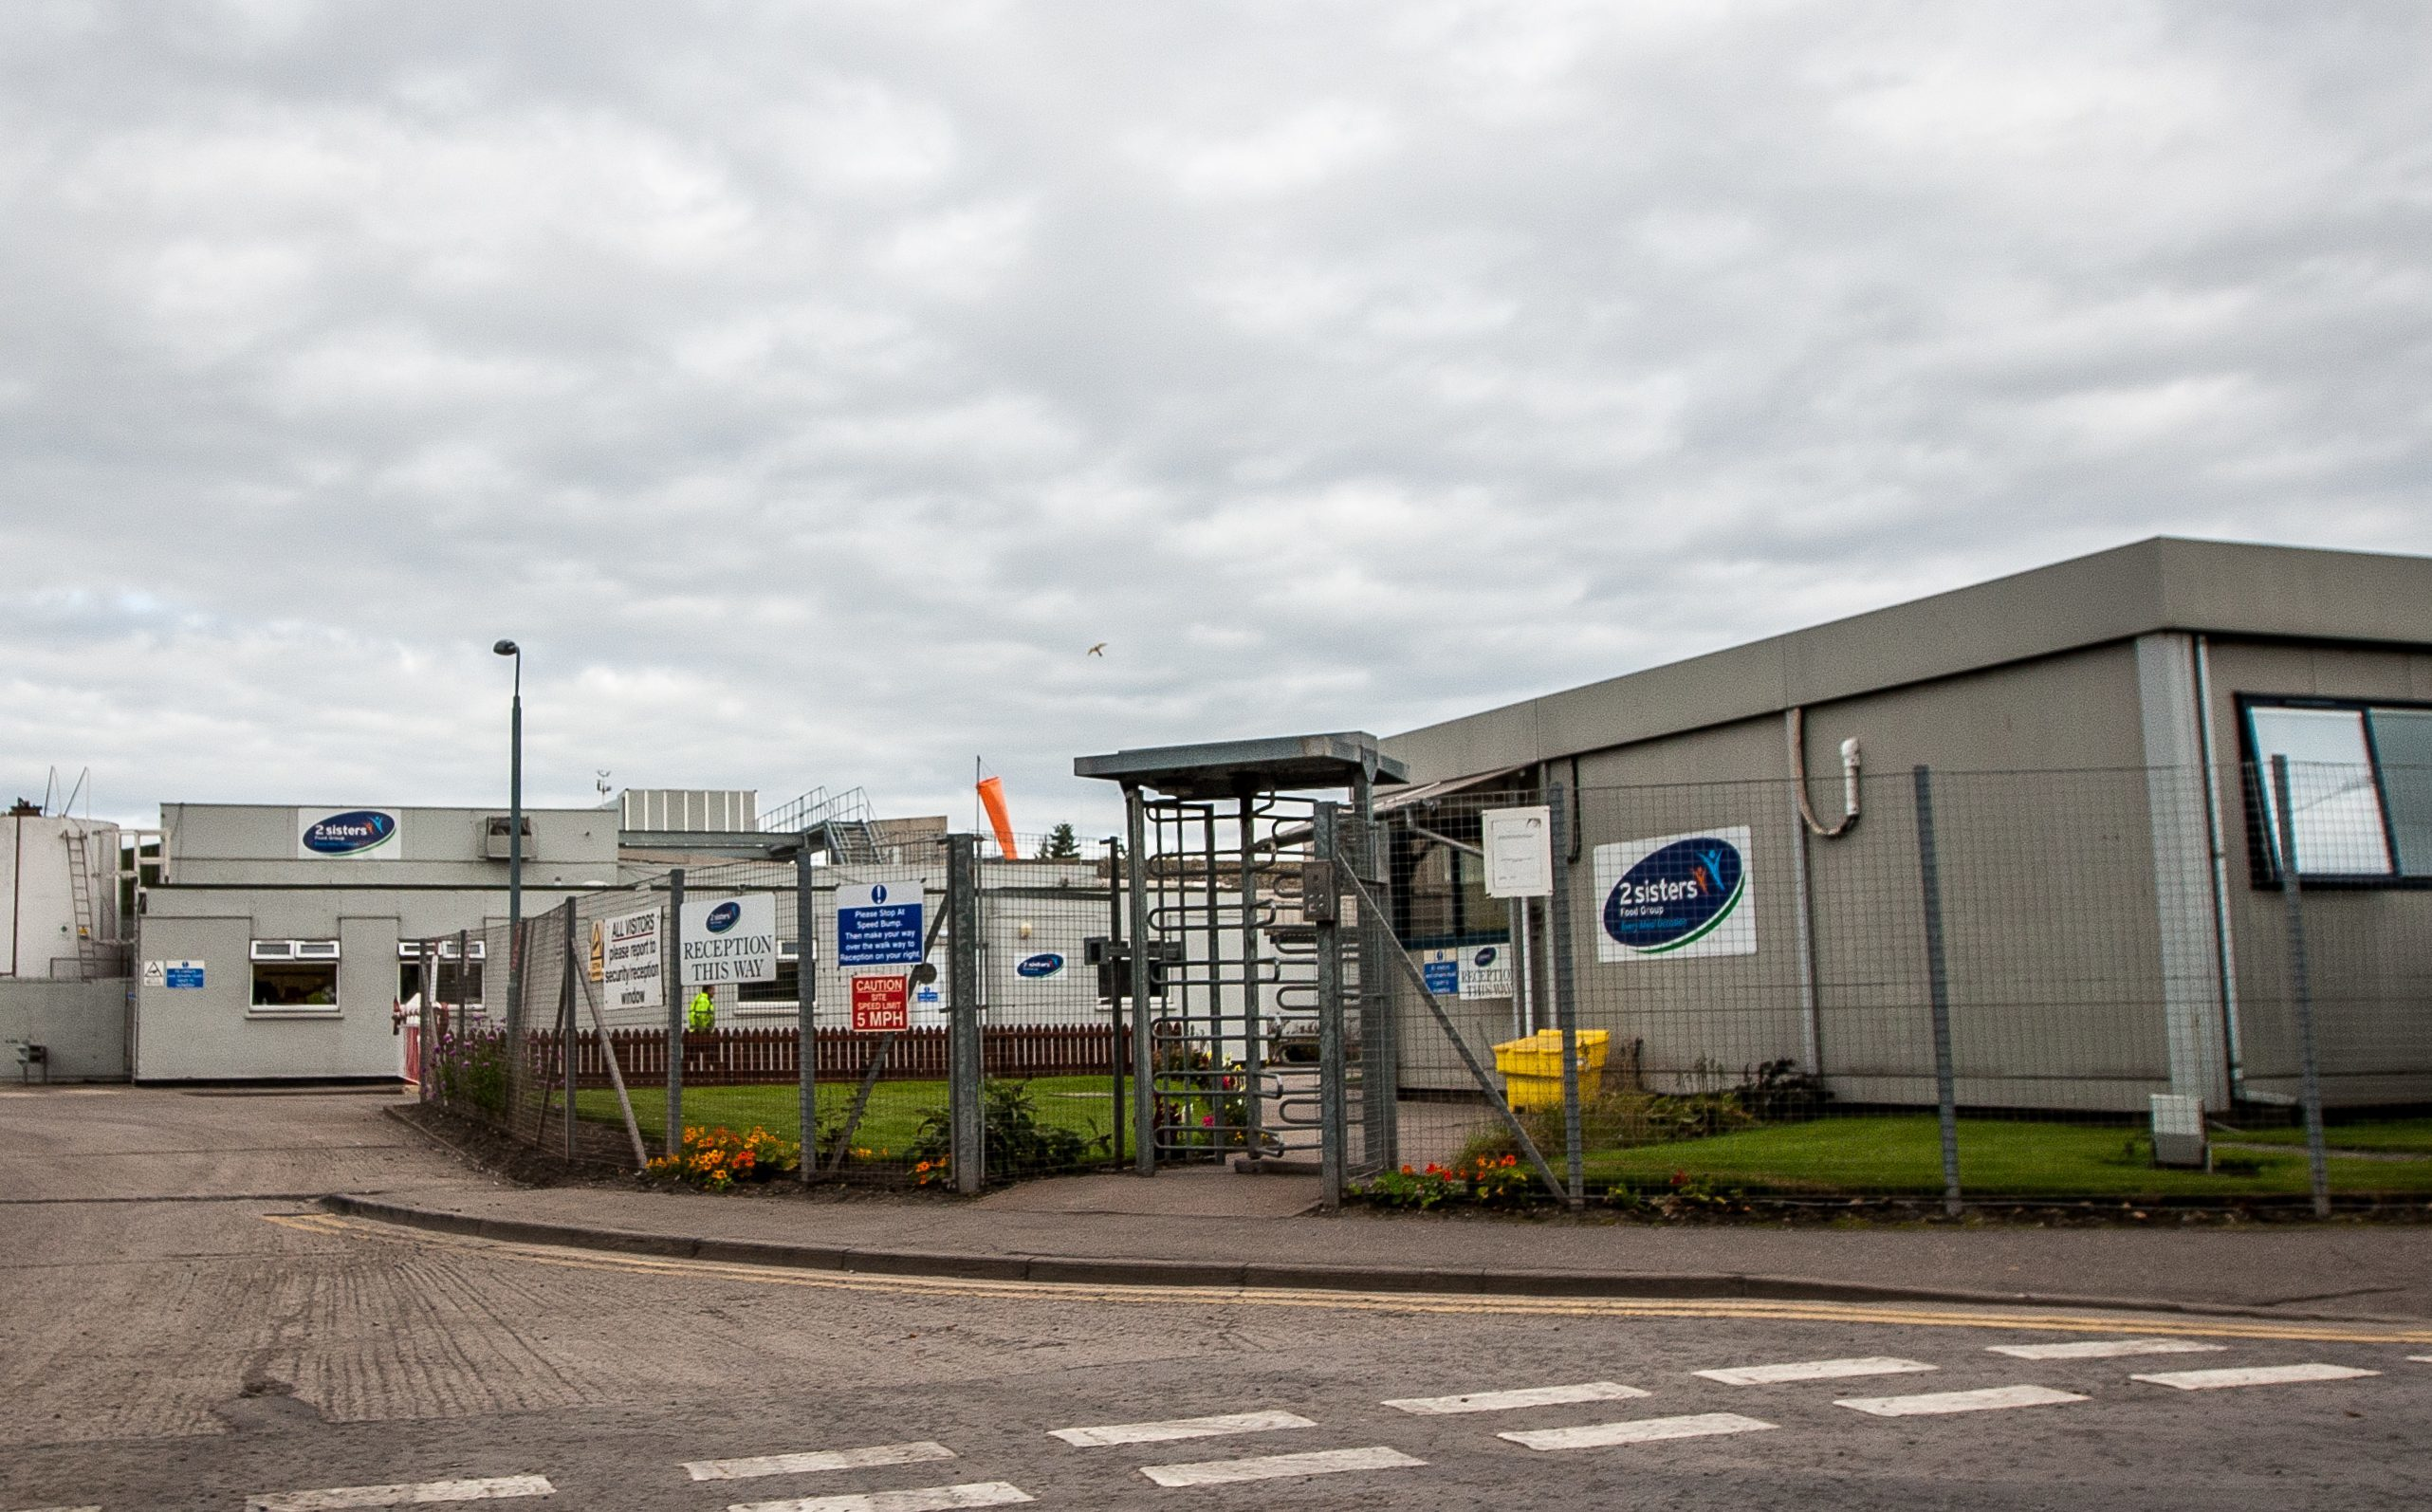 The  2 Sisters Group Chicken plant in Coupar Angus.